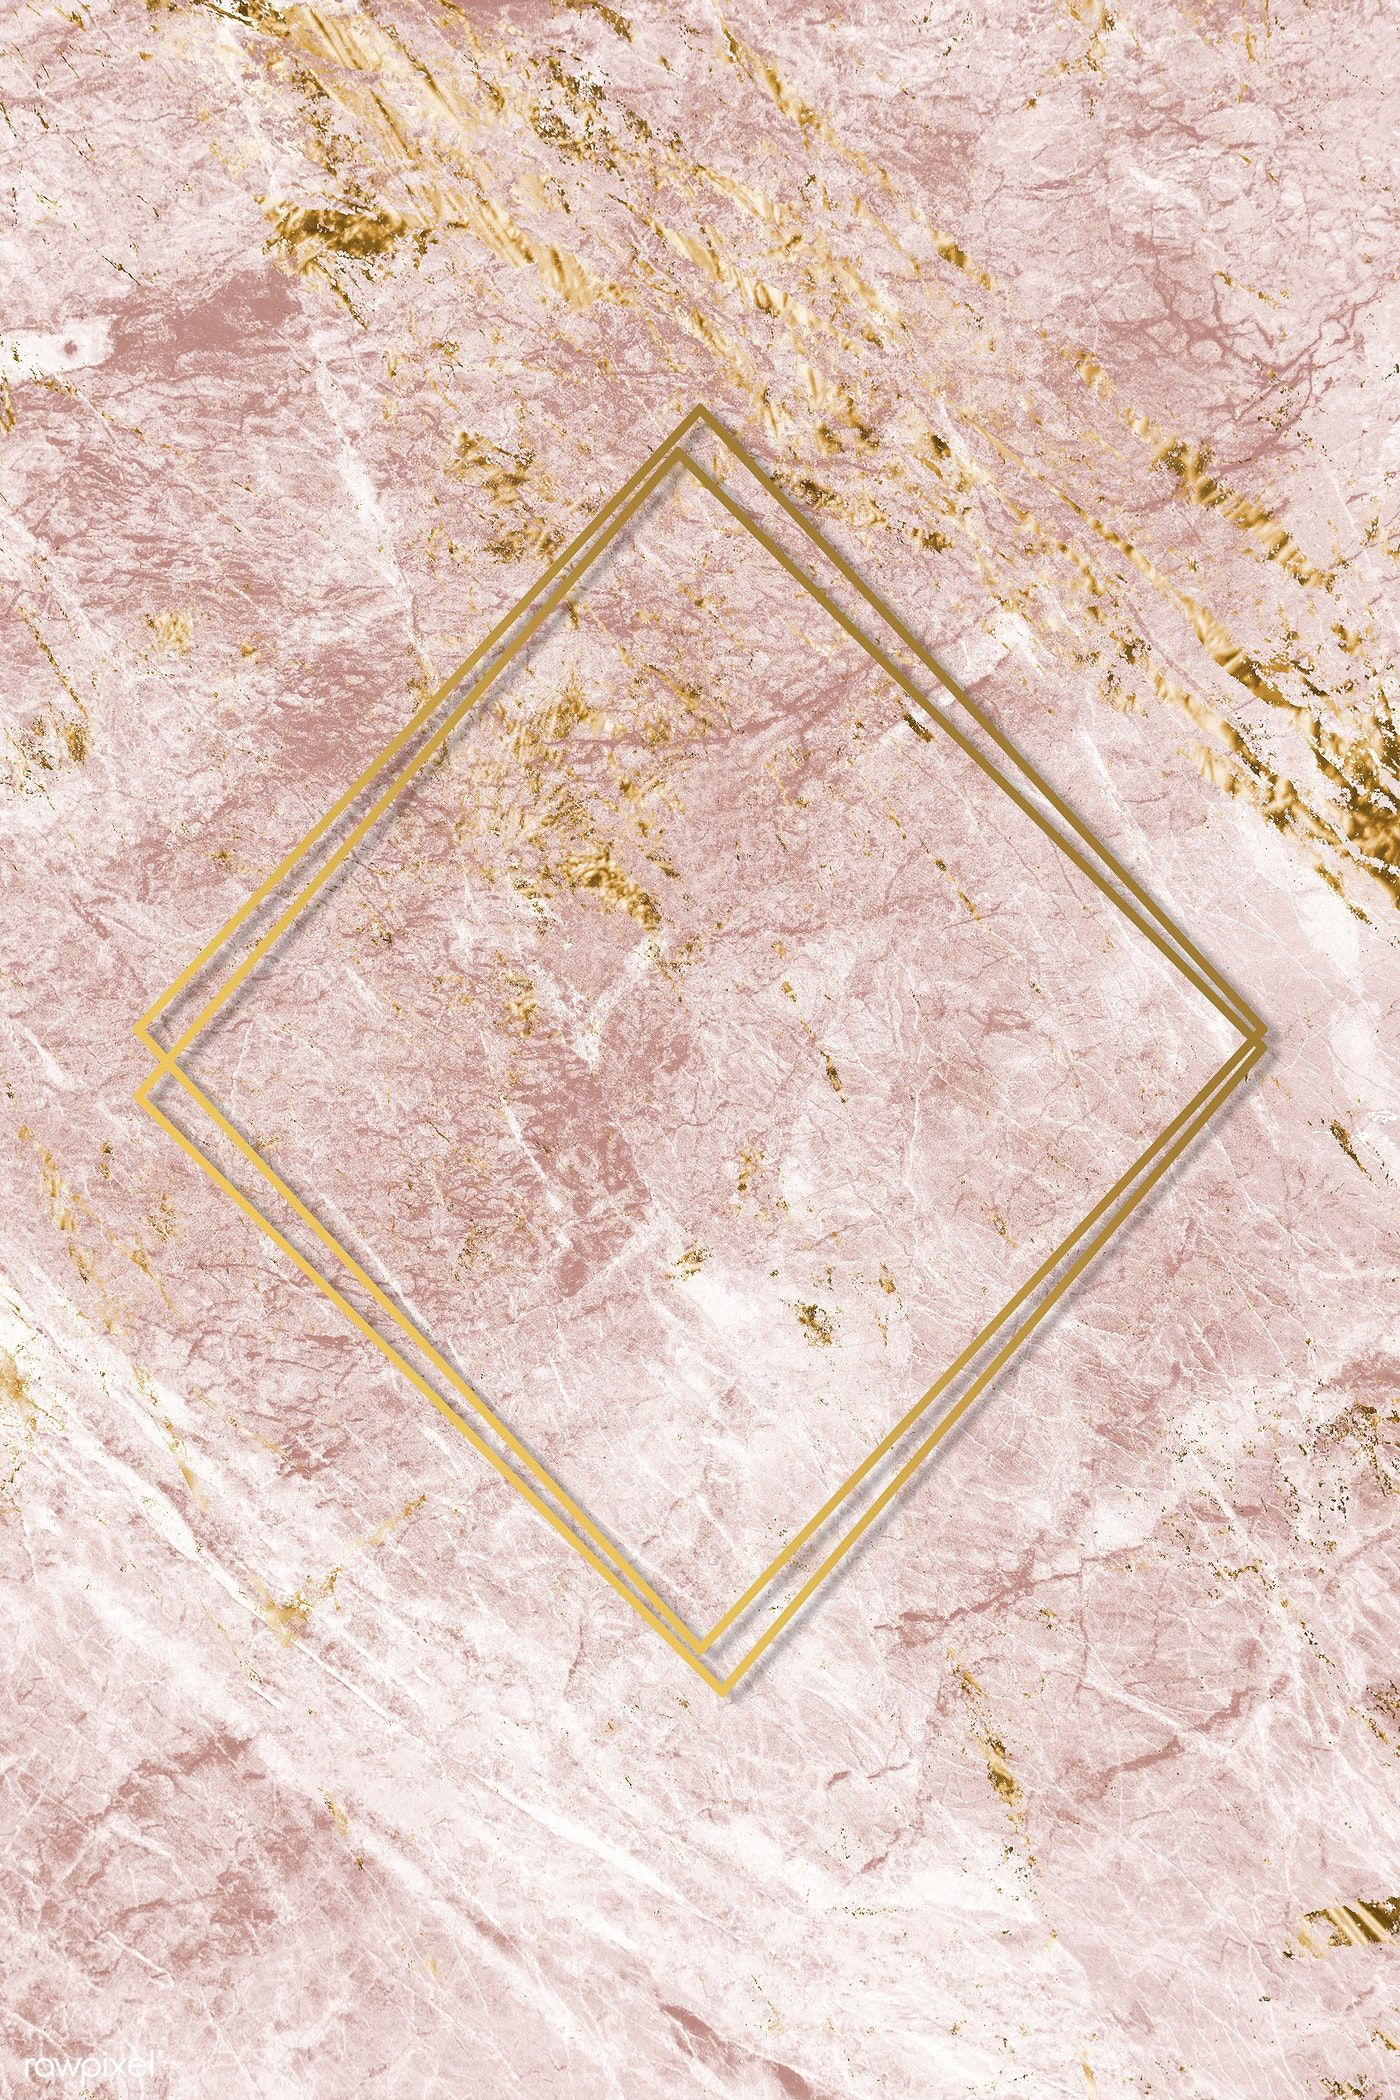 Download premium image of Pink and gold marble textured background #marbletexture